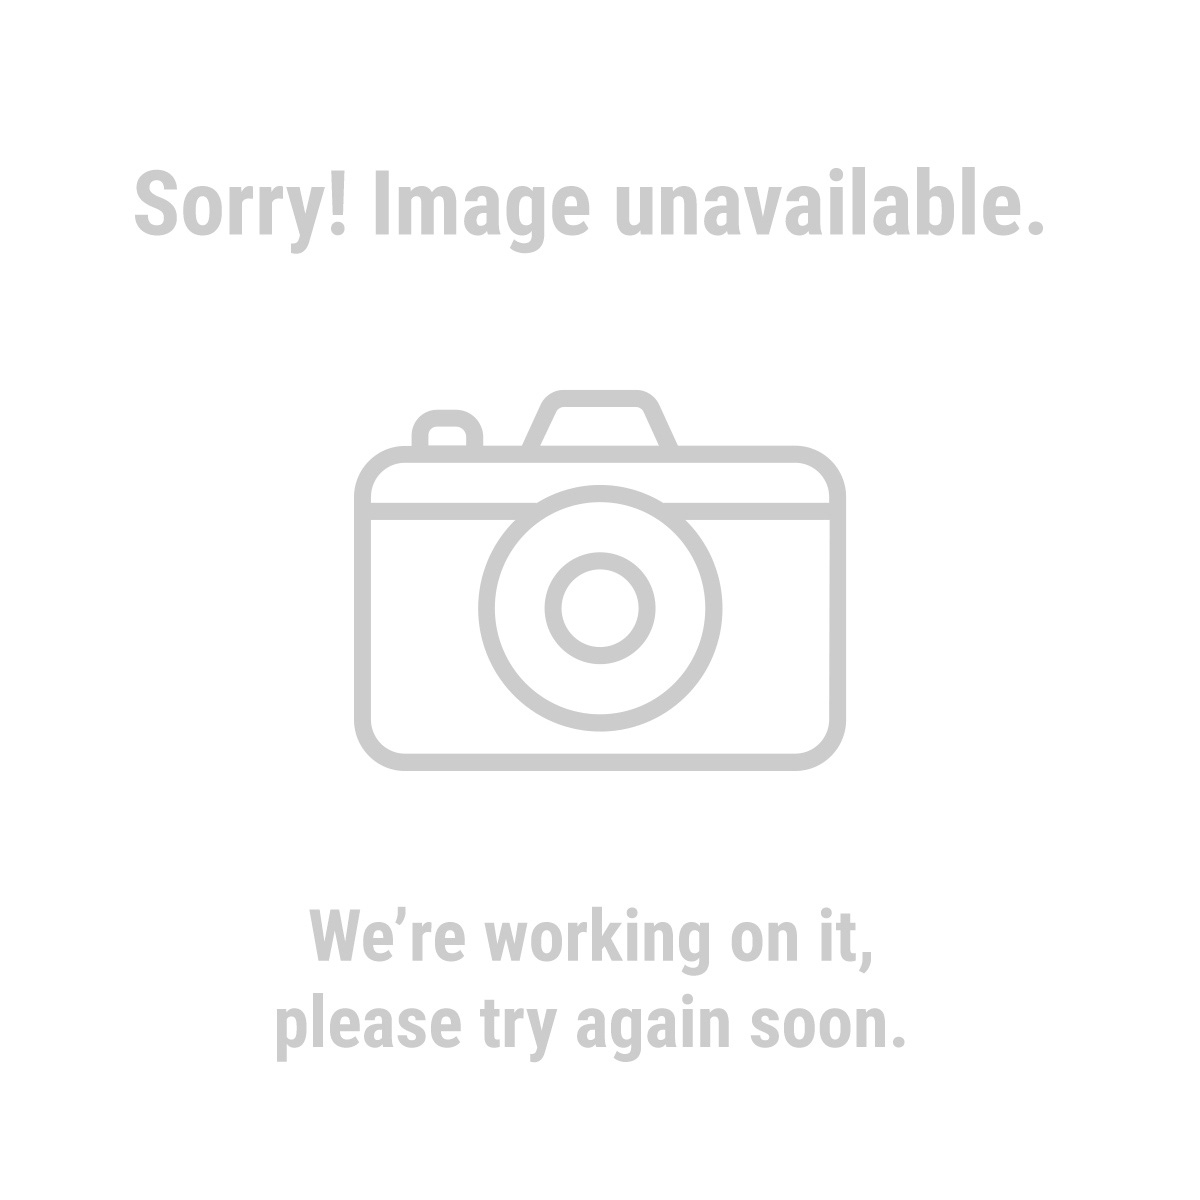 Greenwood 61281 2 gal. Home and Garden Sprayer